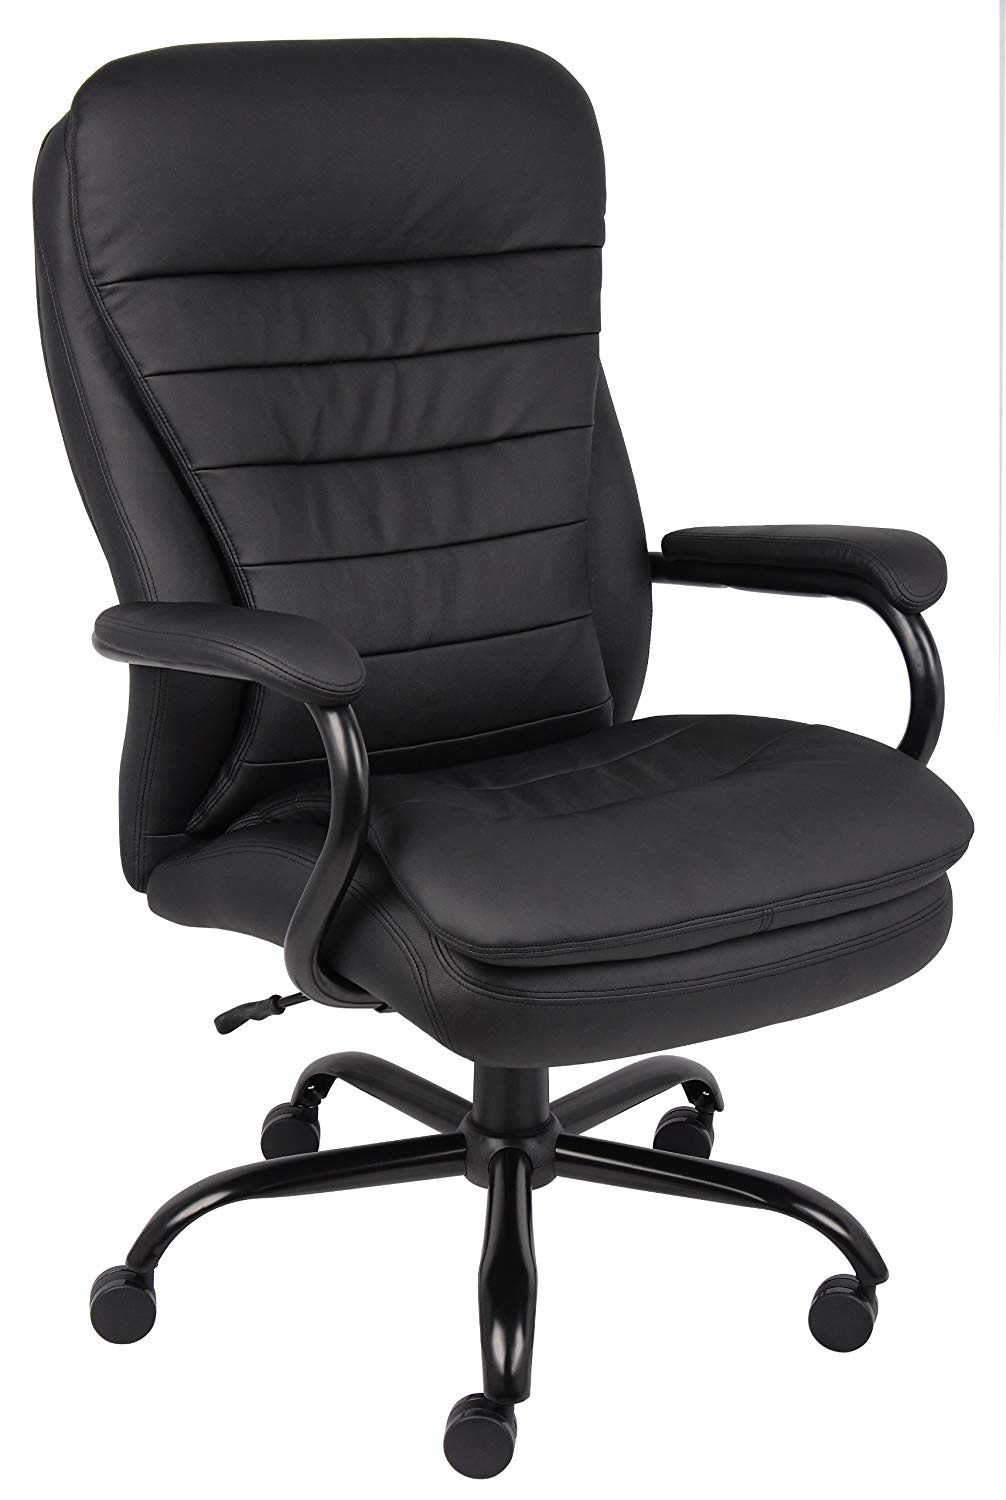 top office chair for long hours